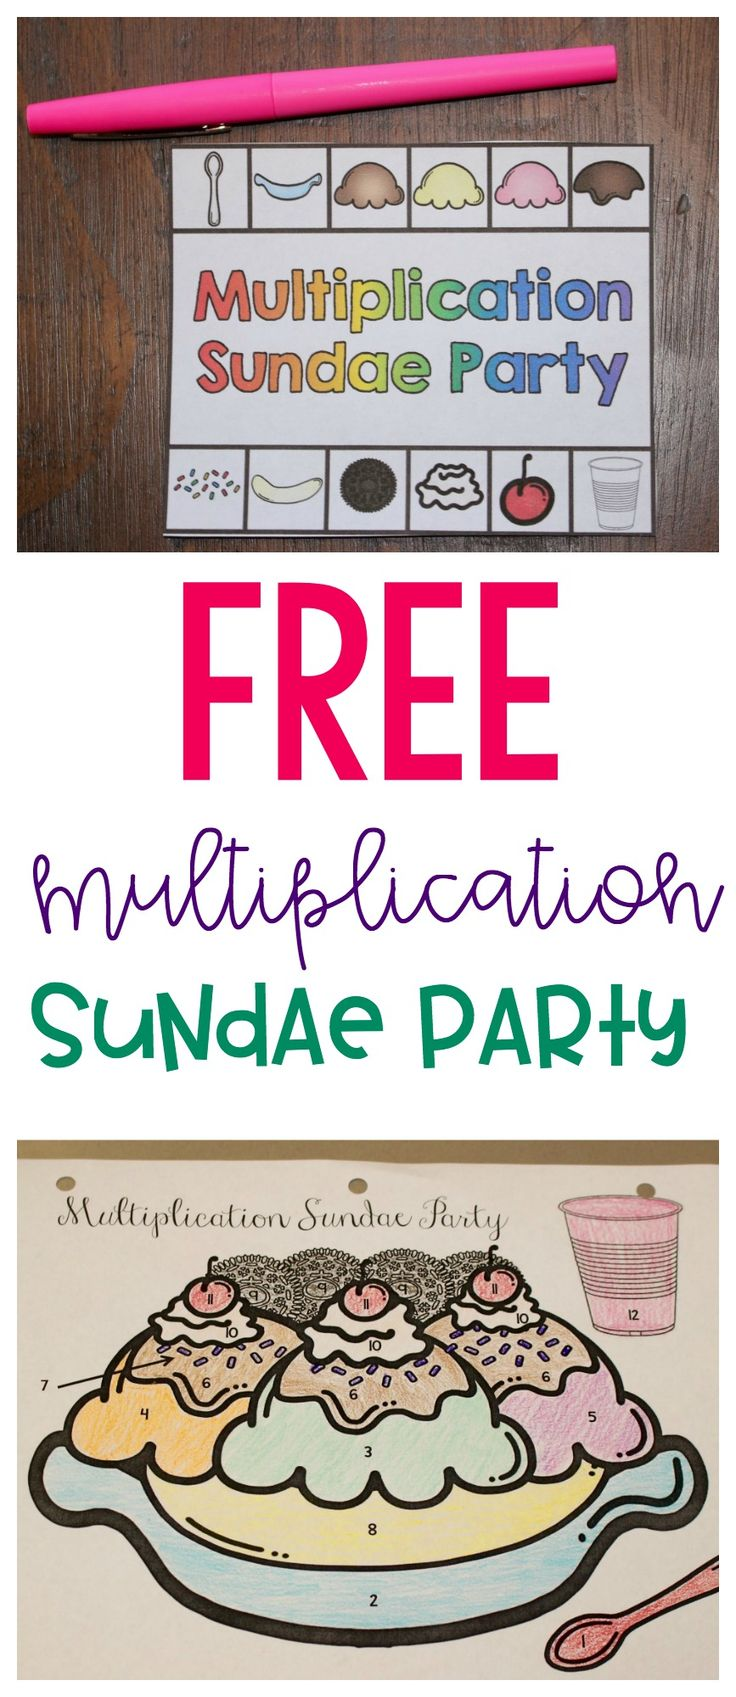 FREE multiplication sundae party printables